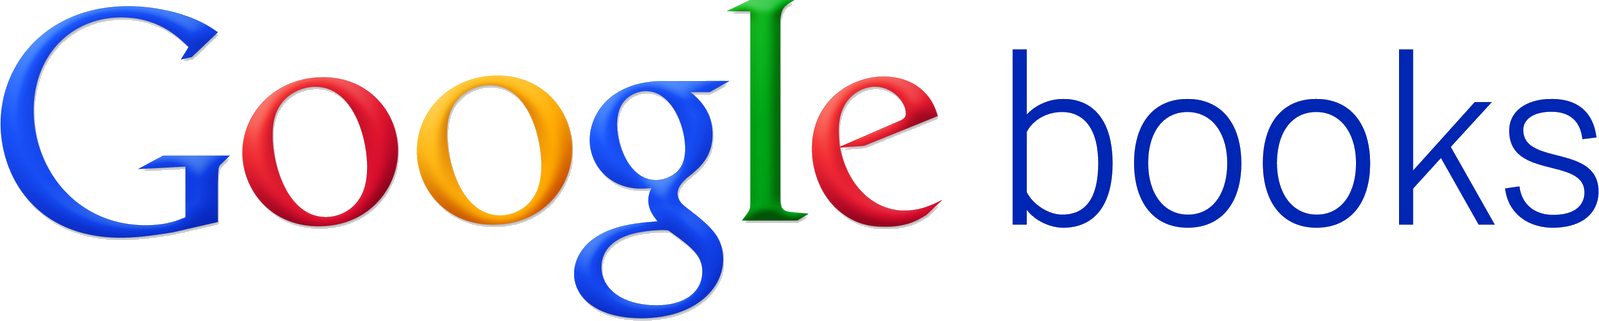 Google_Book_Search_Beta_logo